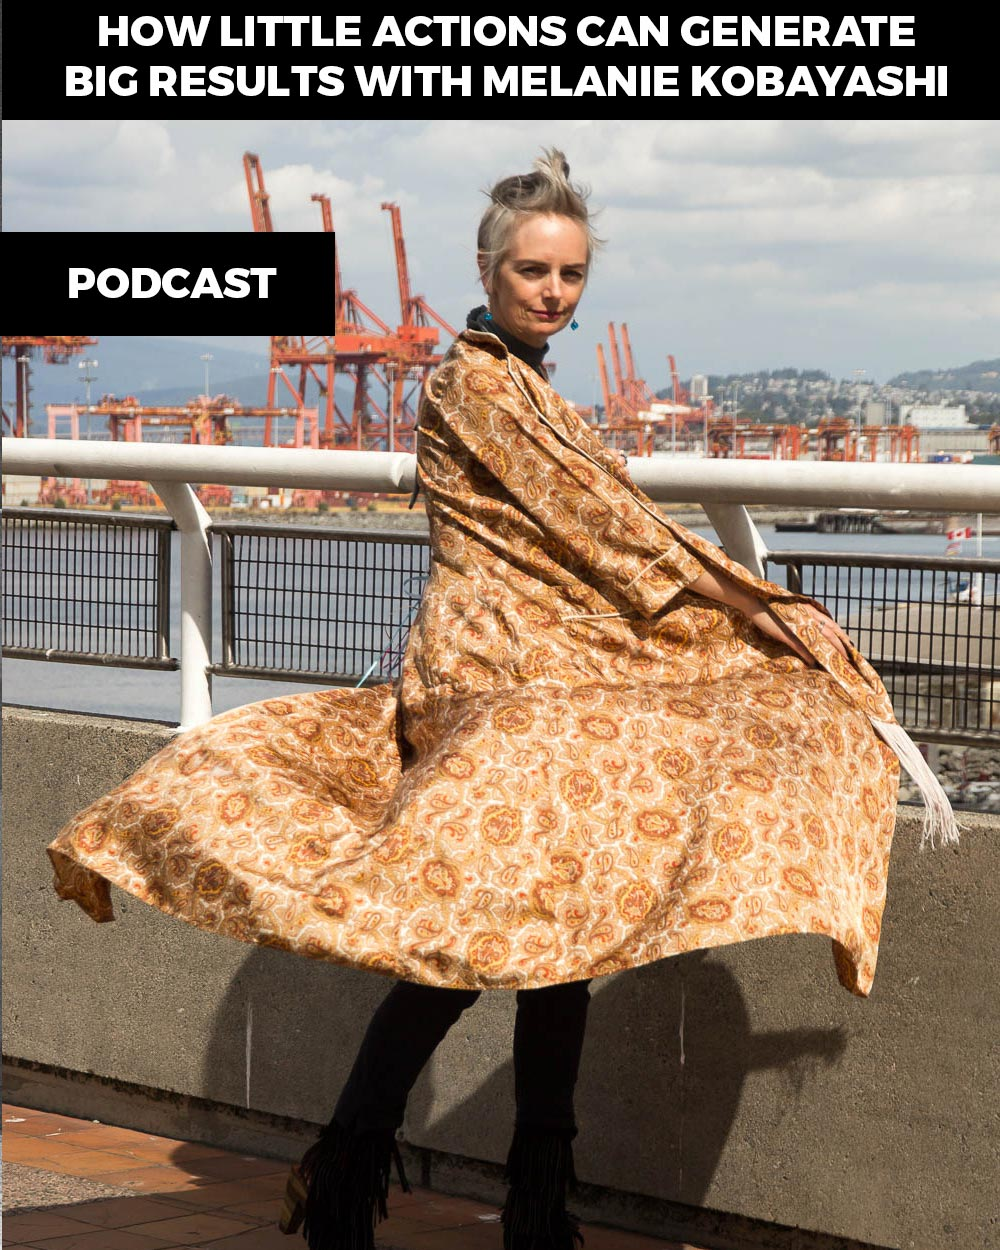 Melanie Kobayashi, style icon, comedian, artist - Listen to this inspirational woman in the True Potential Podcast